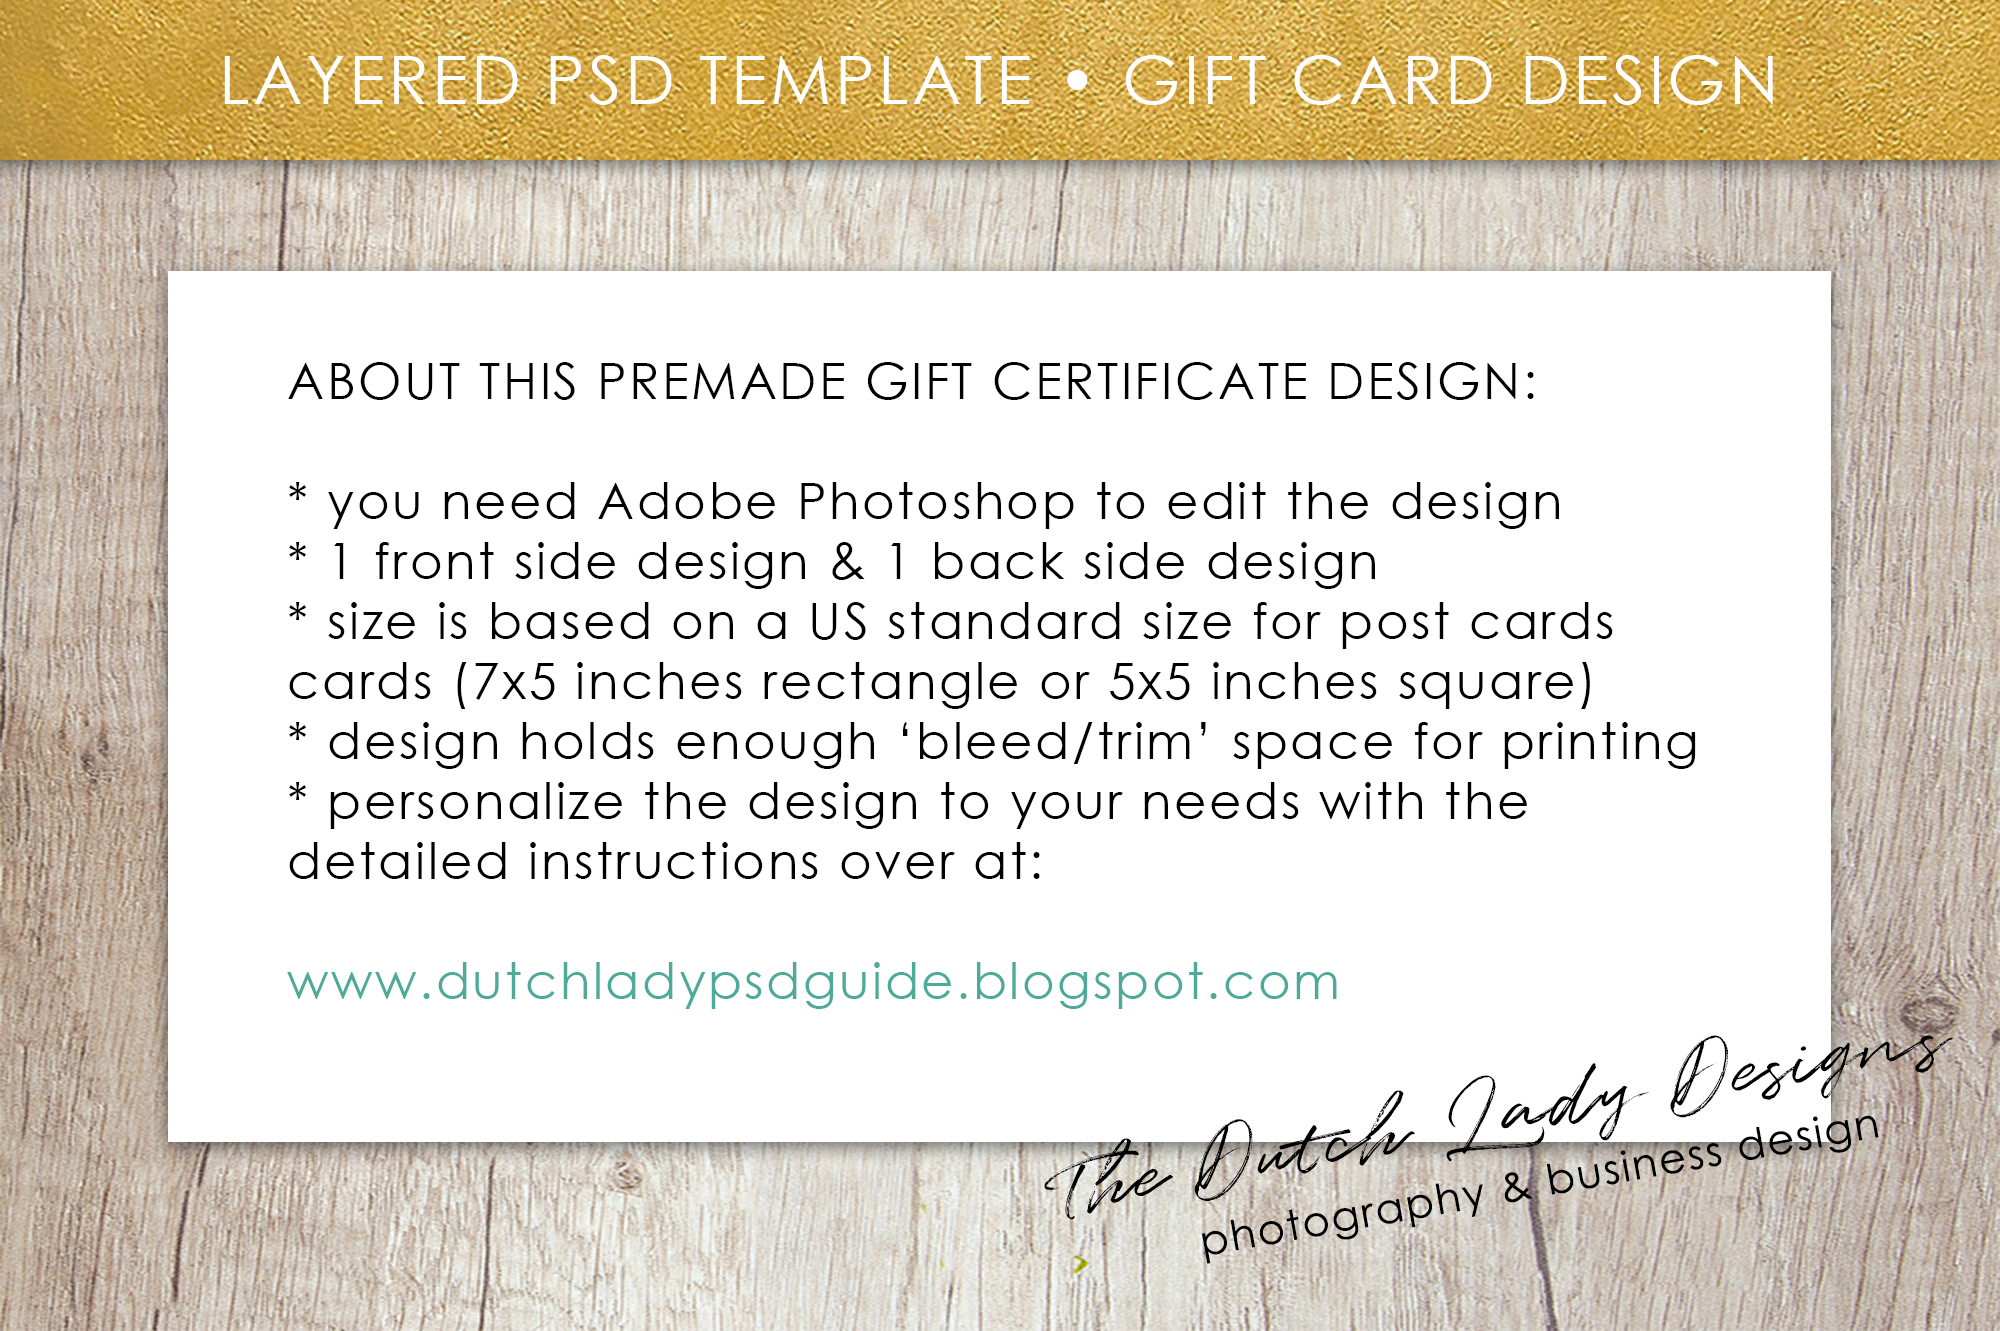 Photo Gift Card Template for Adobe Photoshop - #53 example image 6